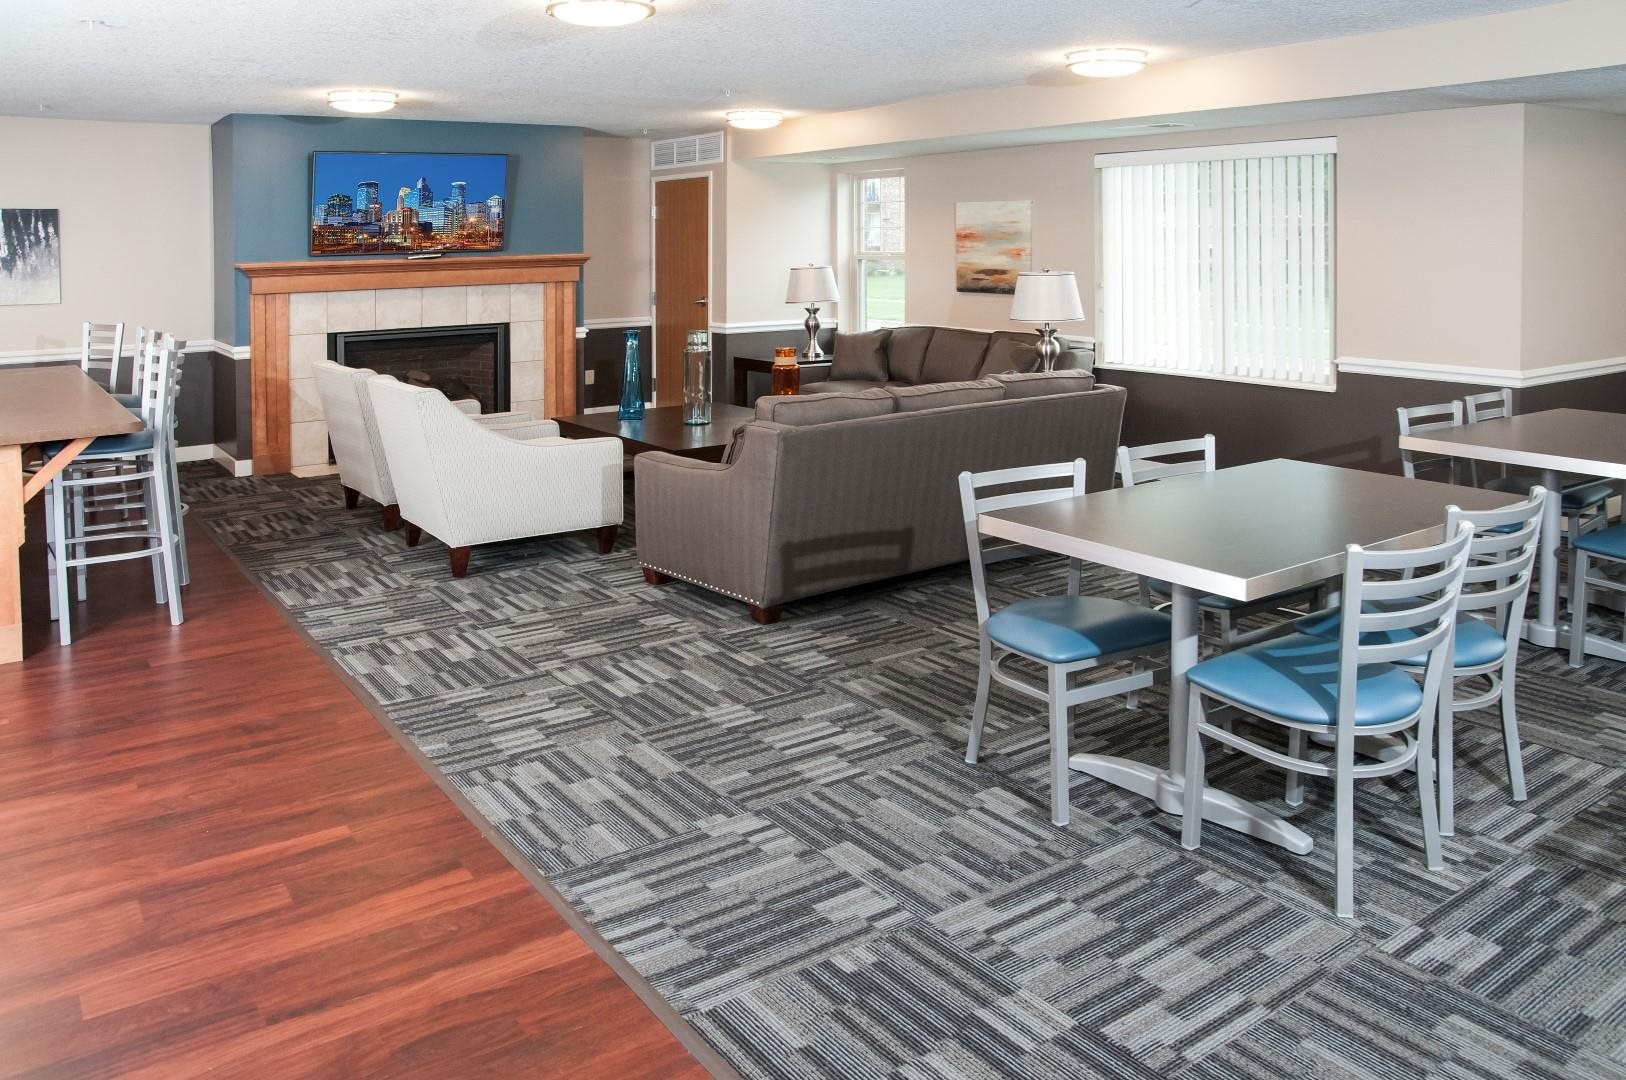 Compass Pointe Apartments Community Space with Large Couches and Kitchen Tables